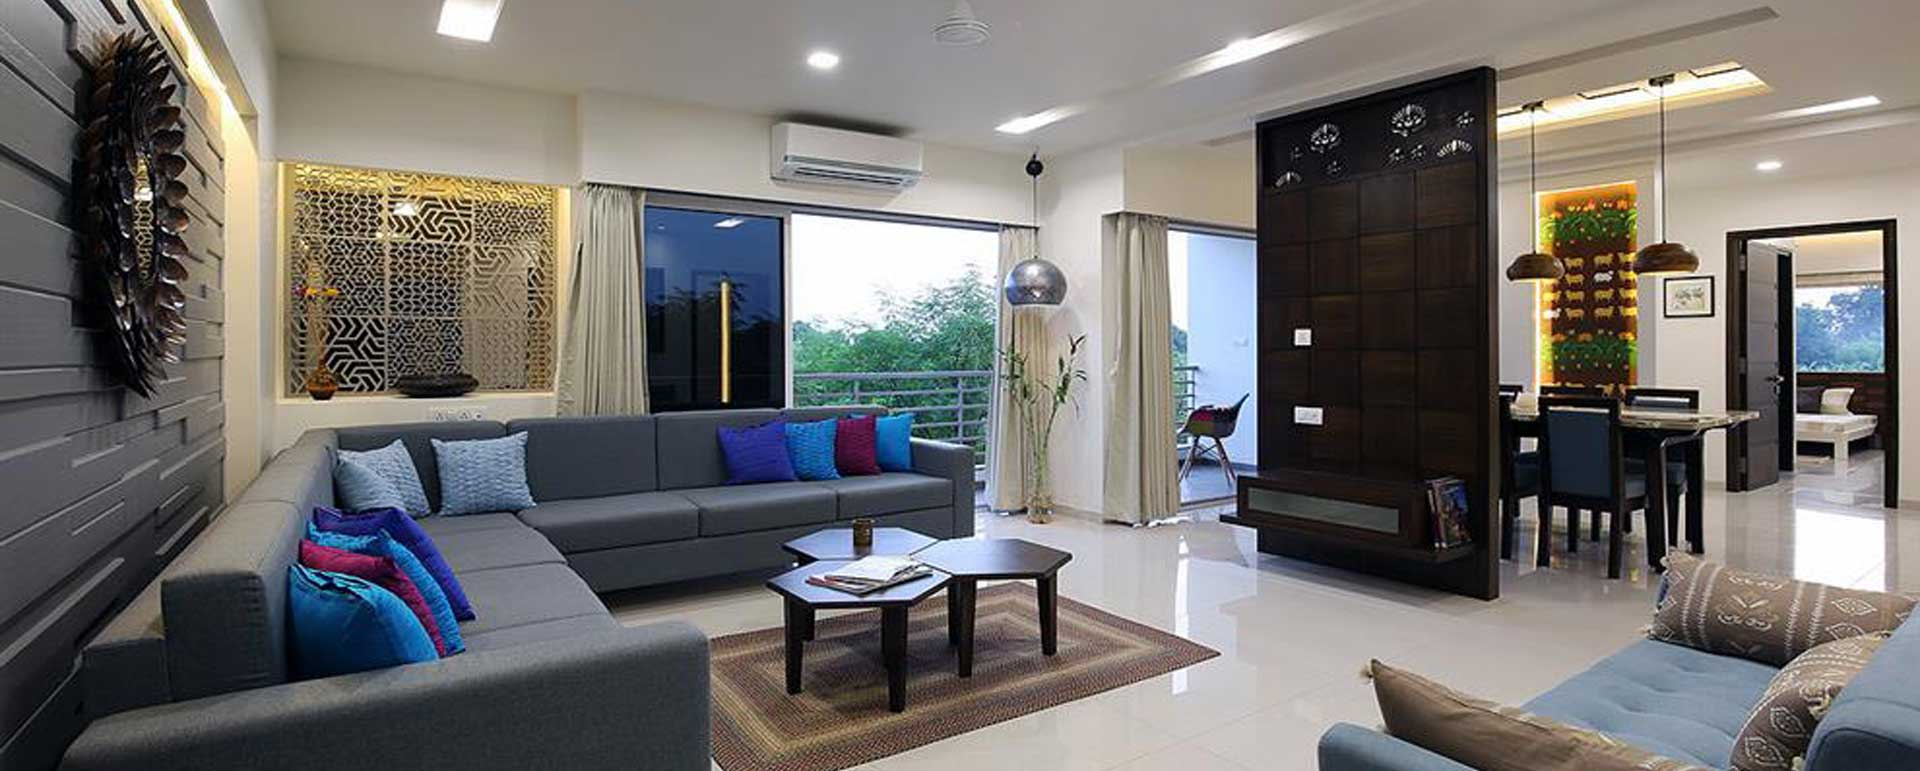 2bhk/3bhk interior designer south kolkata